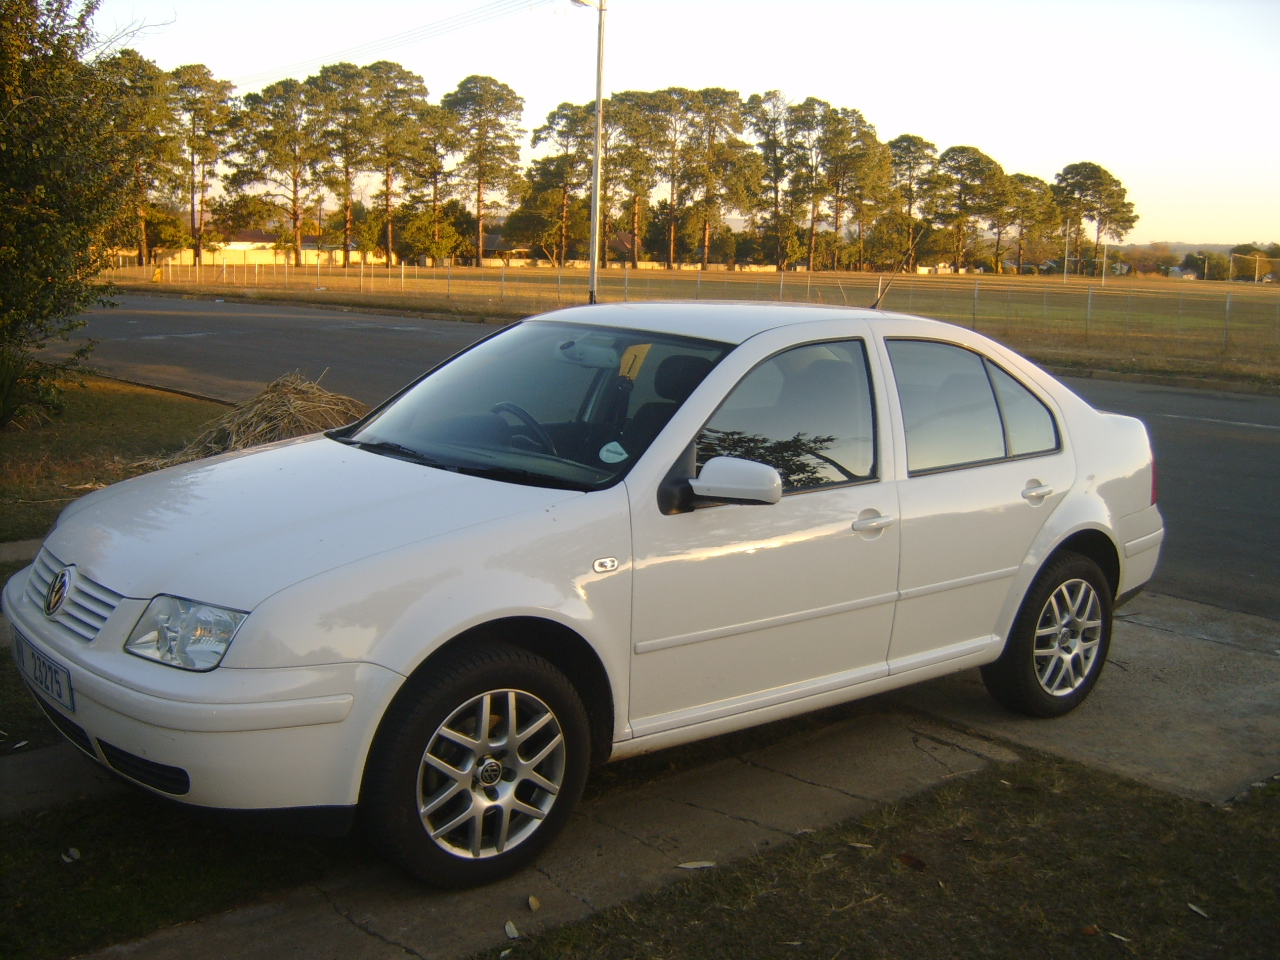 Volkswagen Jetta 1.9 2005 photo - 6